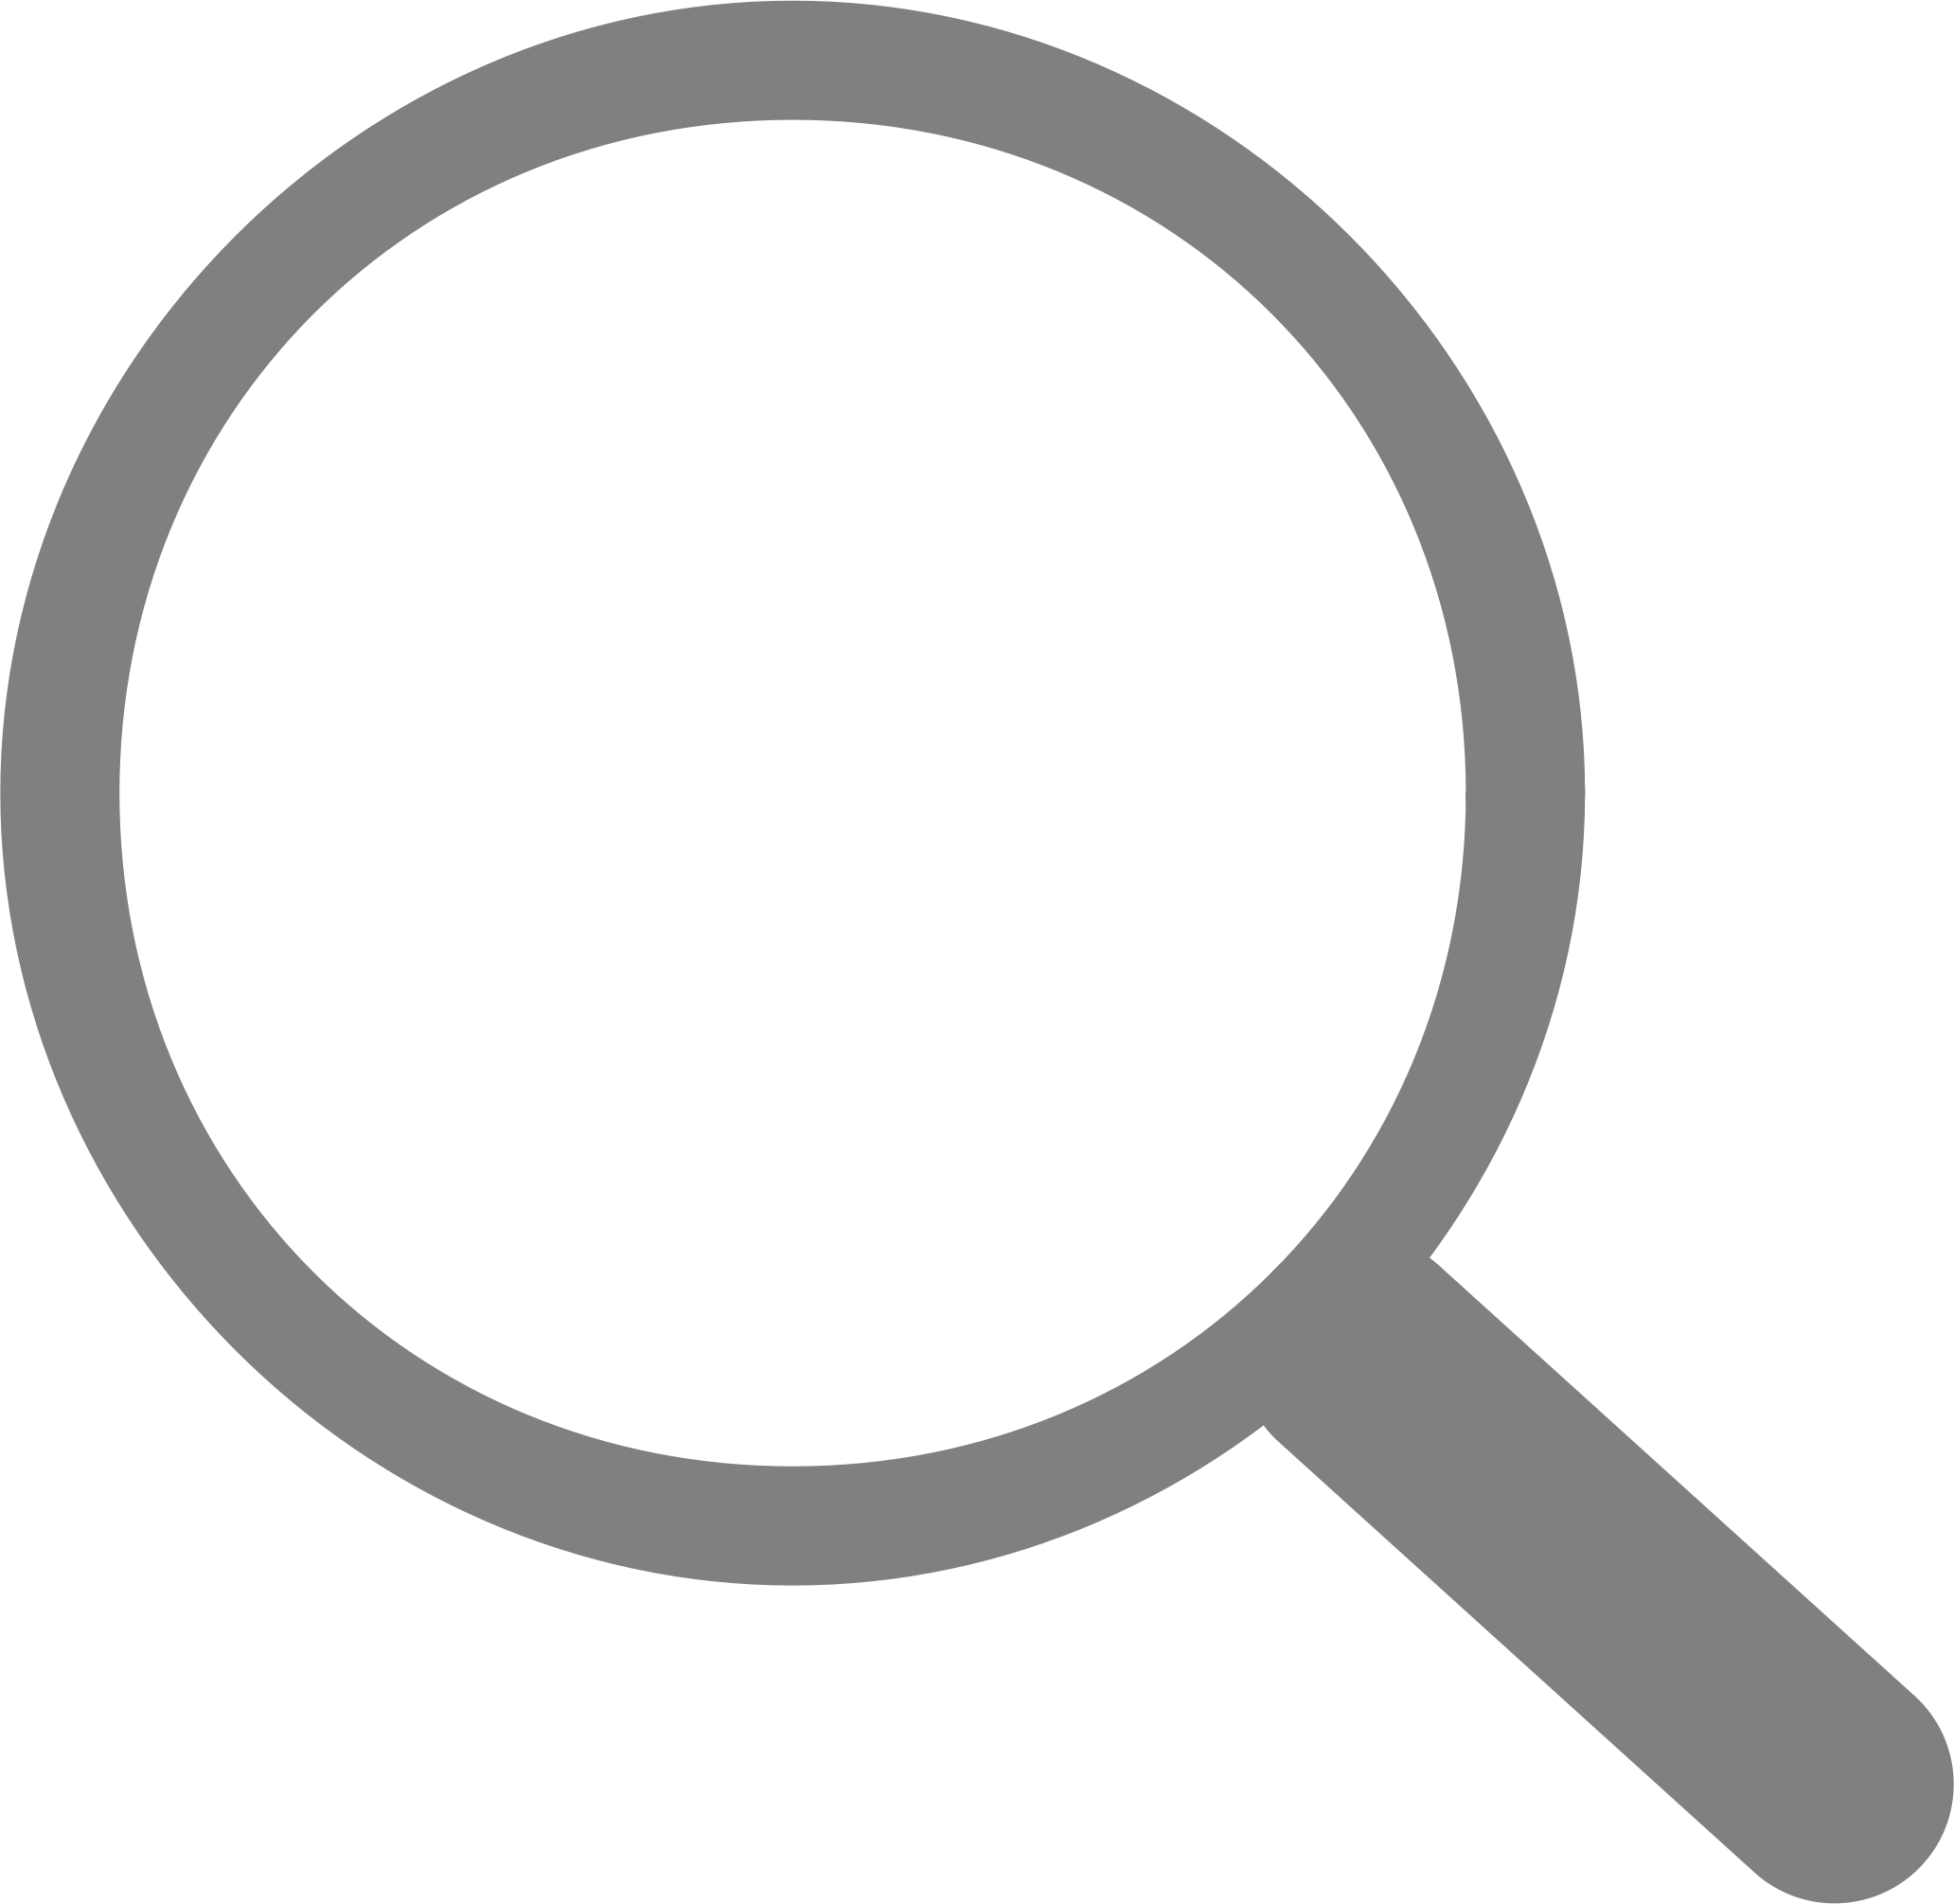 Simple Grey Search Icon transparent PNG.